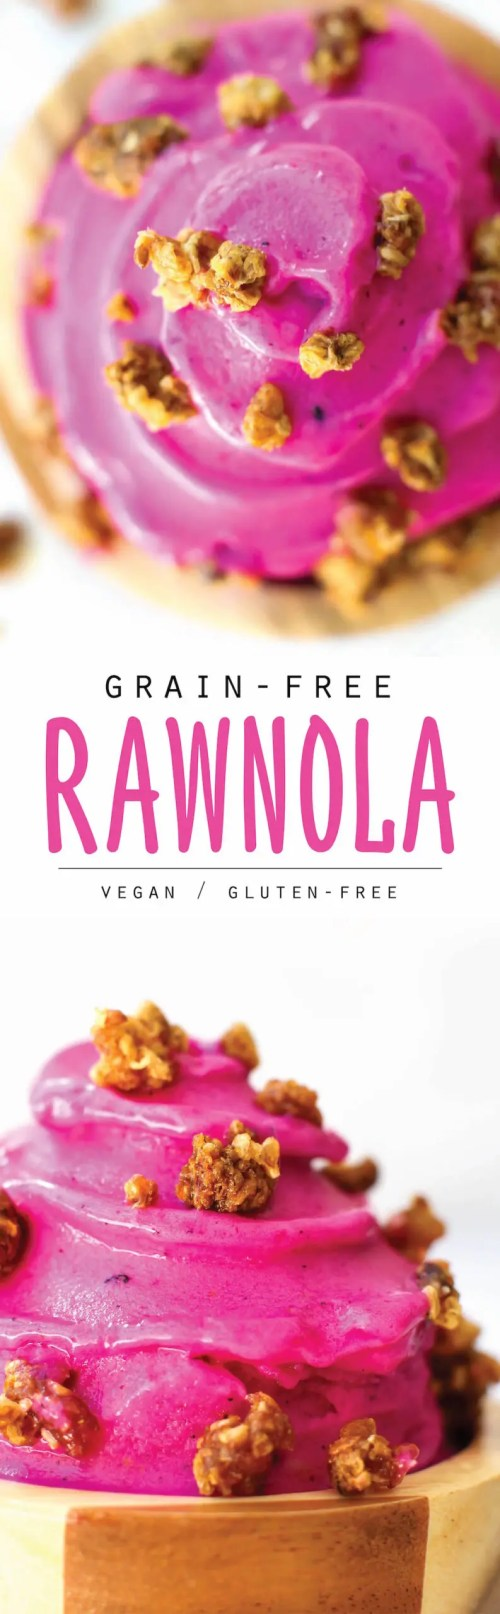 Grain Free Rawnola Recipe (2 ways!) | Vegan, Raw, Nut-Free